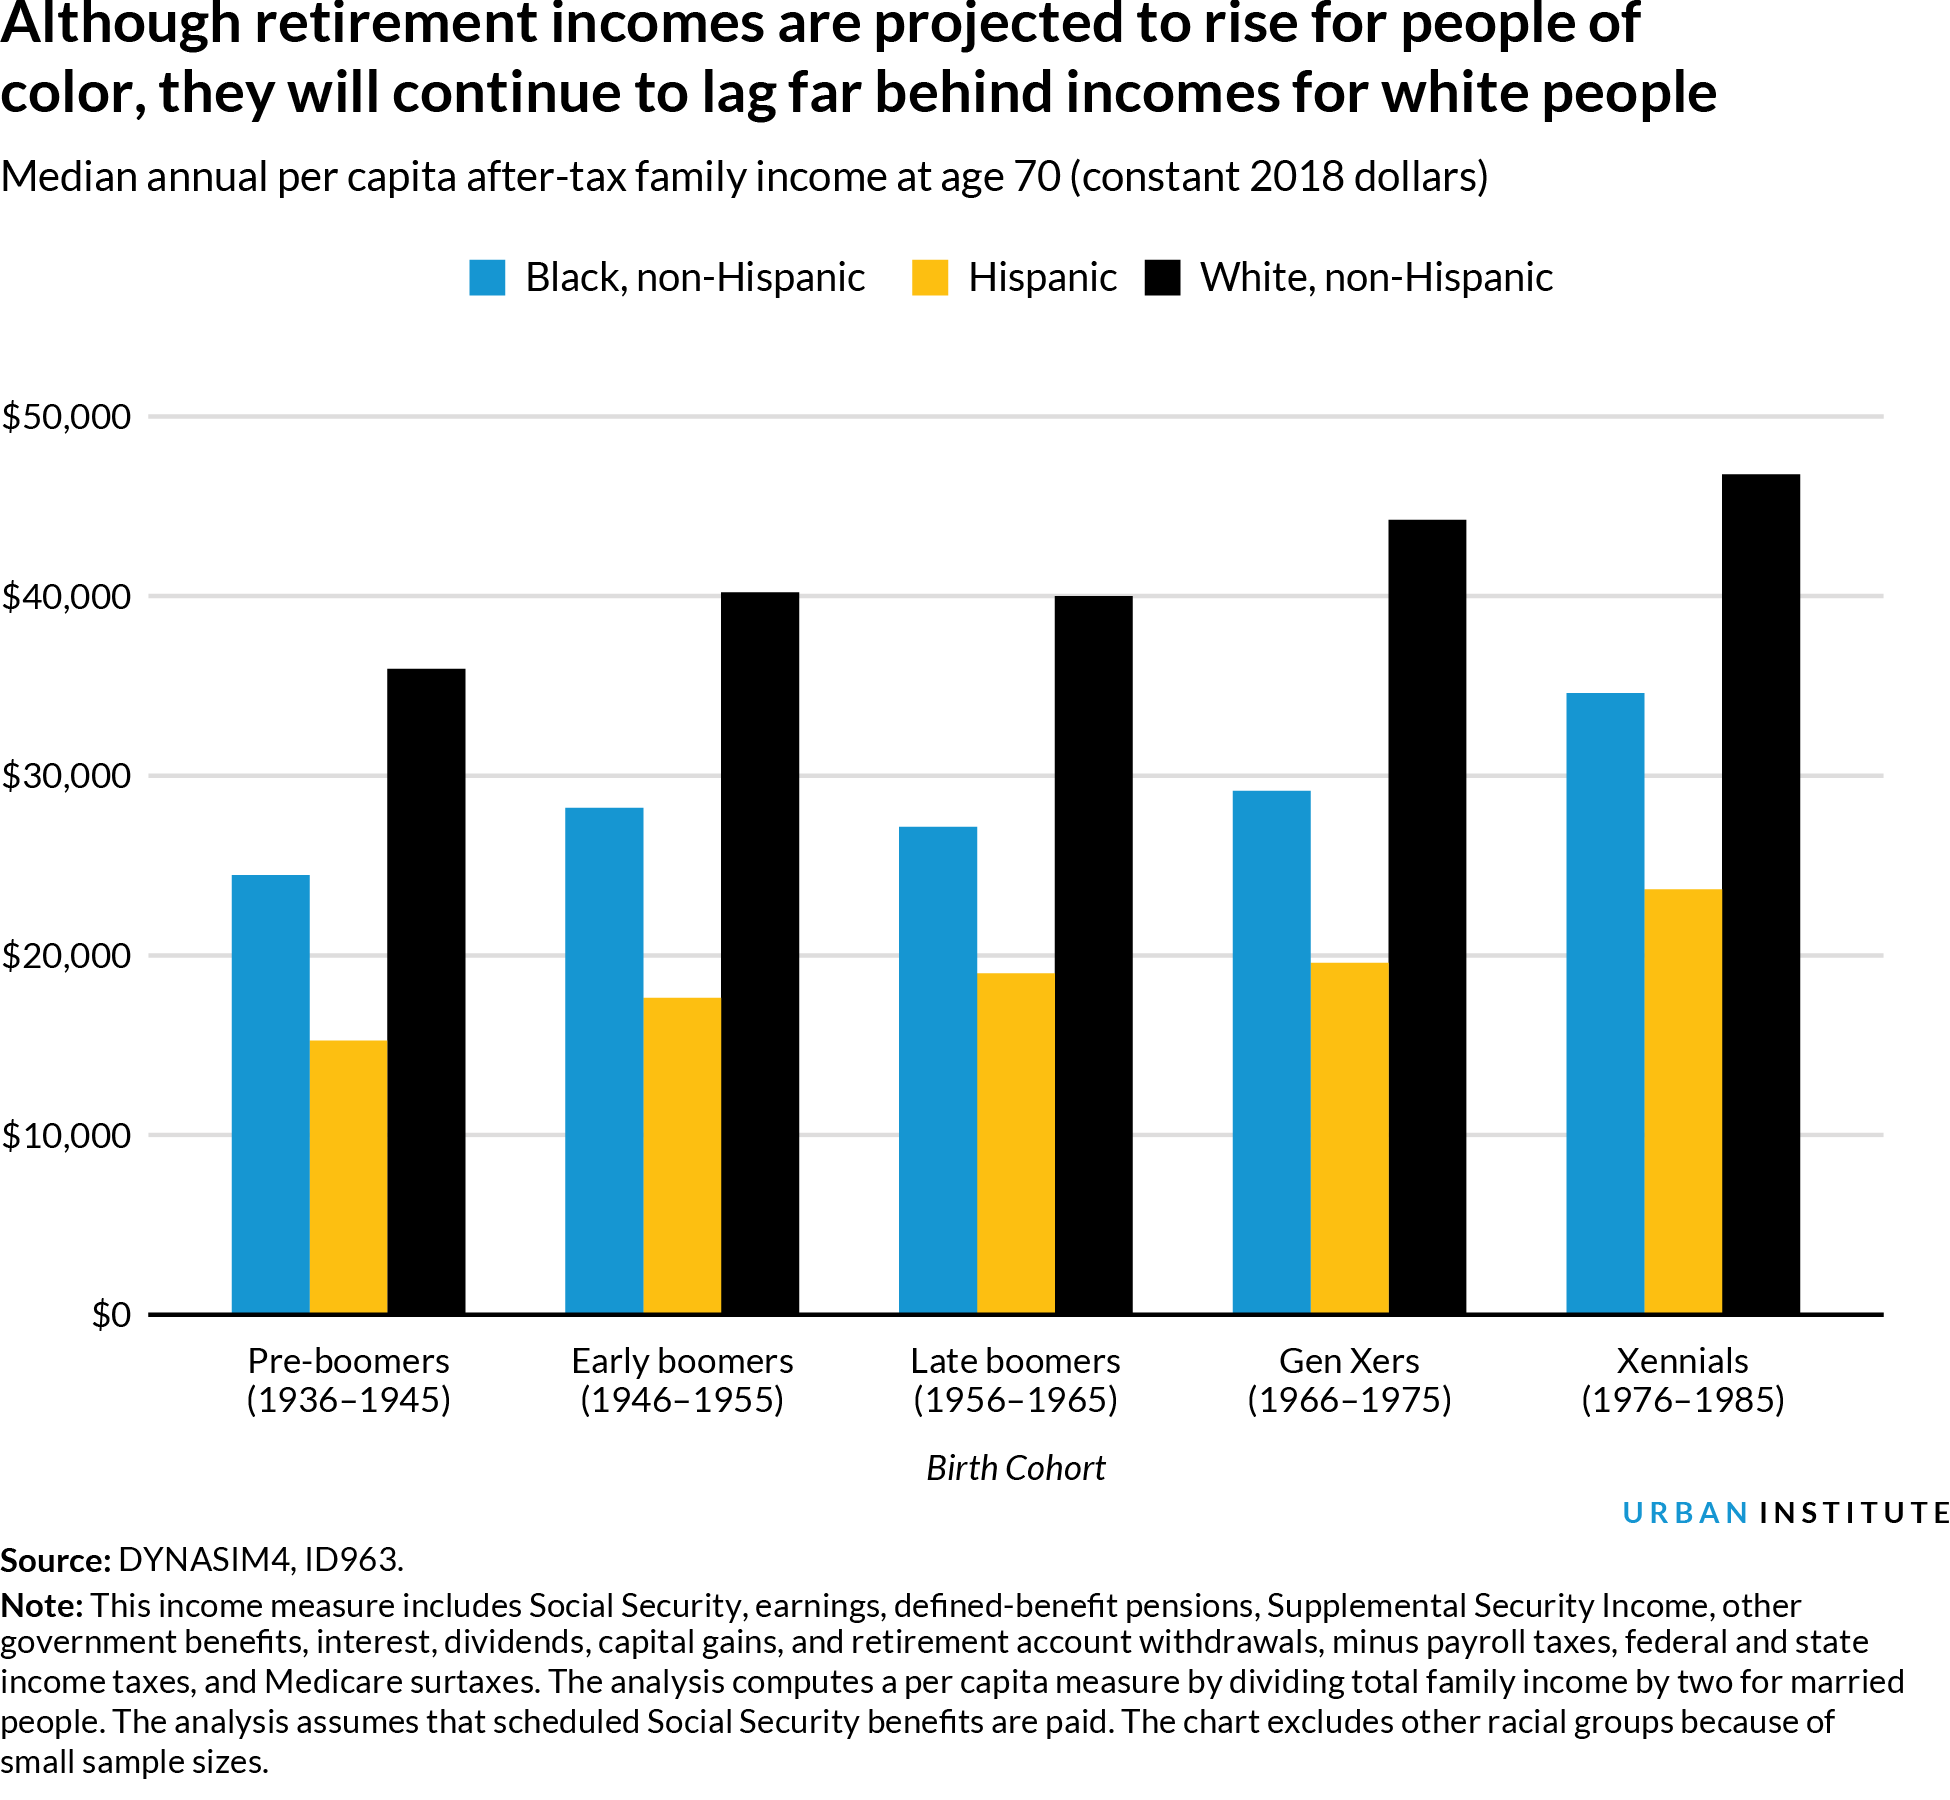 Bar chart of retirement income by race and cohort